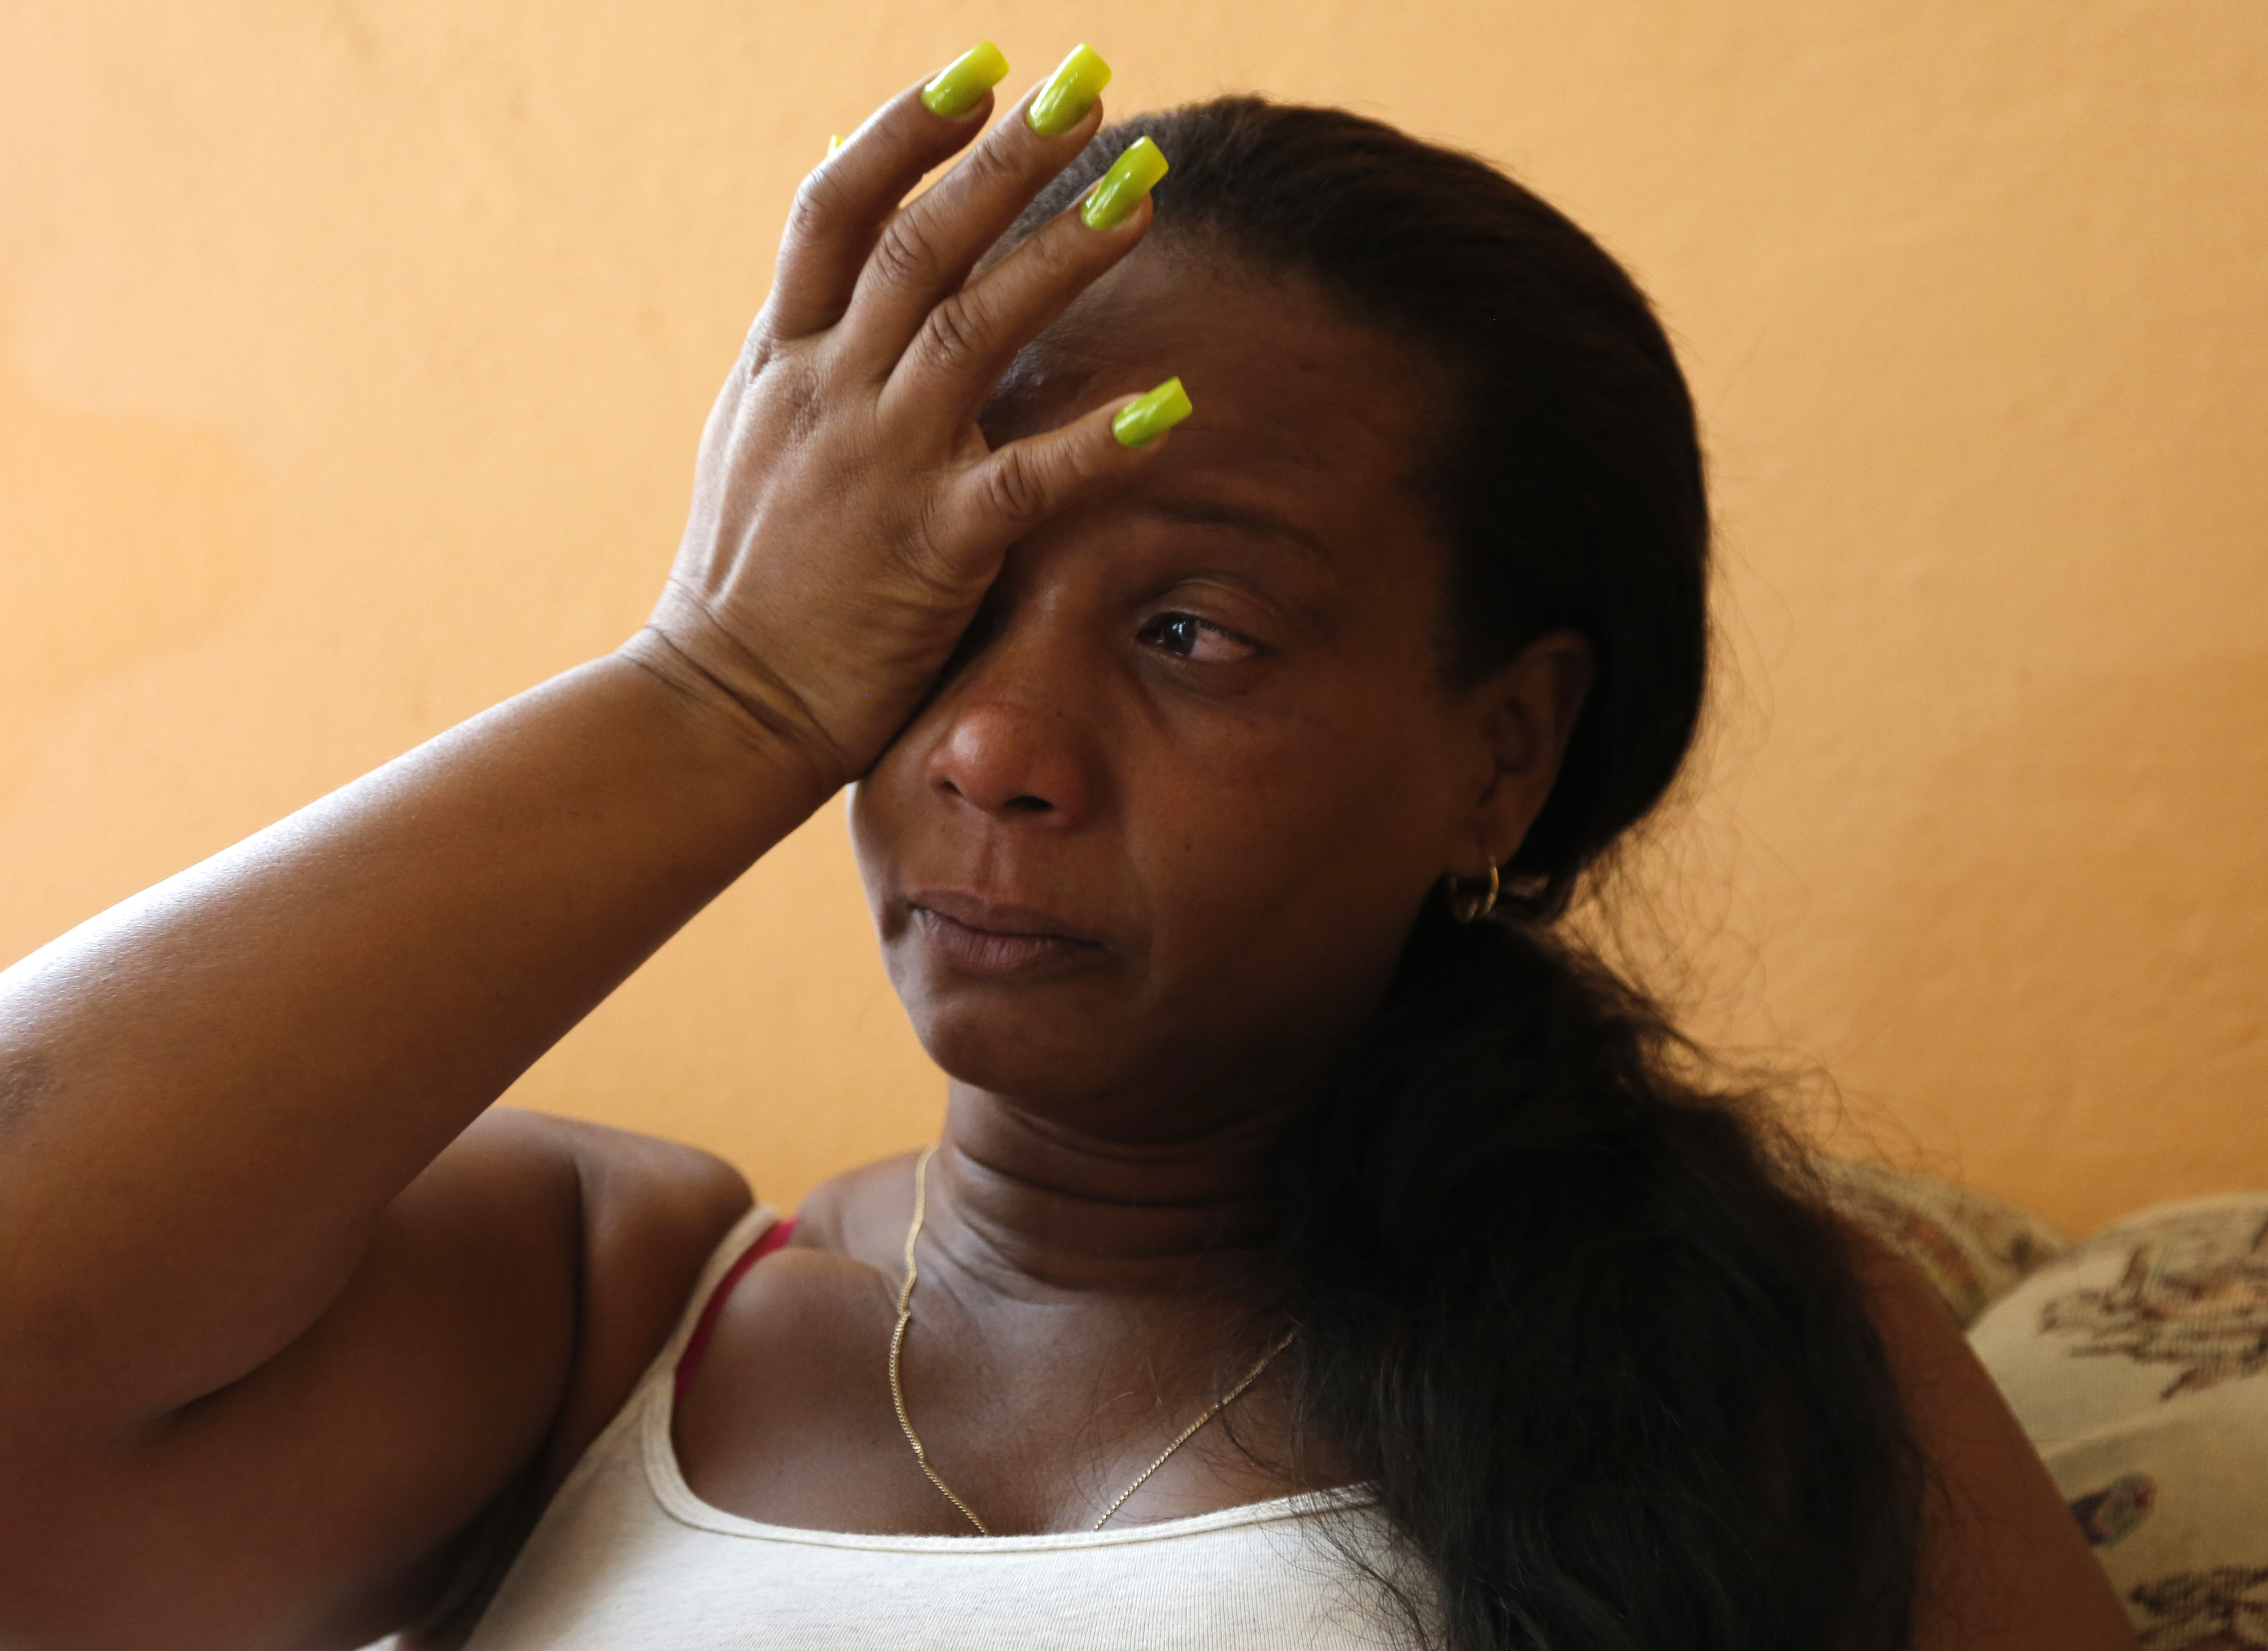 """In this March 3, 2015 photo, Melba Rosa Bacallao, mother of Cuban baseball player Yasmany Tomas, is overcome by emotion as she talks about her son during an interview at her home in Havana, Cuba. """"I miss him so much. It's tough,"""" said Rosita, her voice cr"""